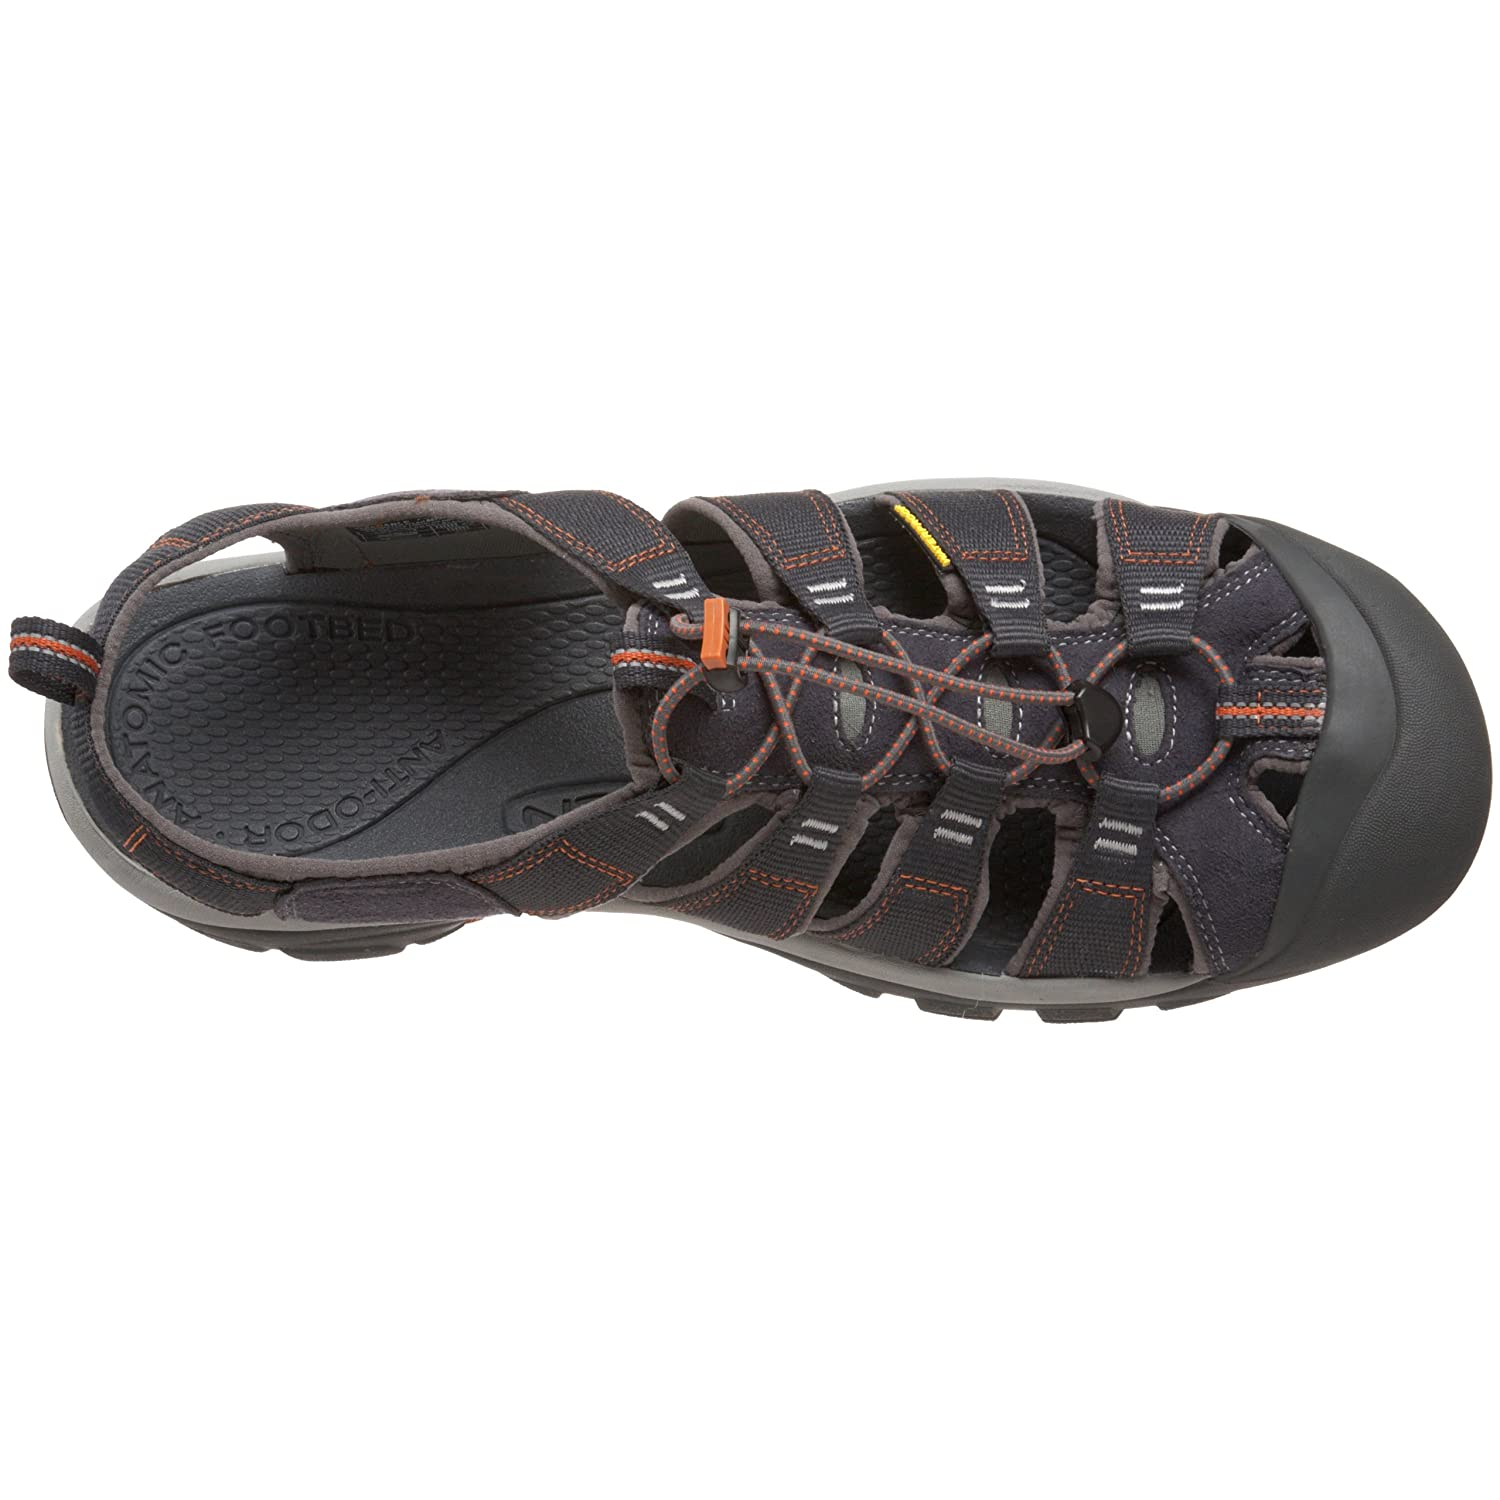 KEEN Men's Newport H2 US|India Sandal B00361F8XO 7.5 D(M) US|India H2 Ink/Rust 481b3f